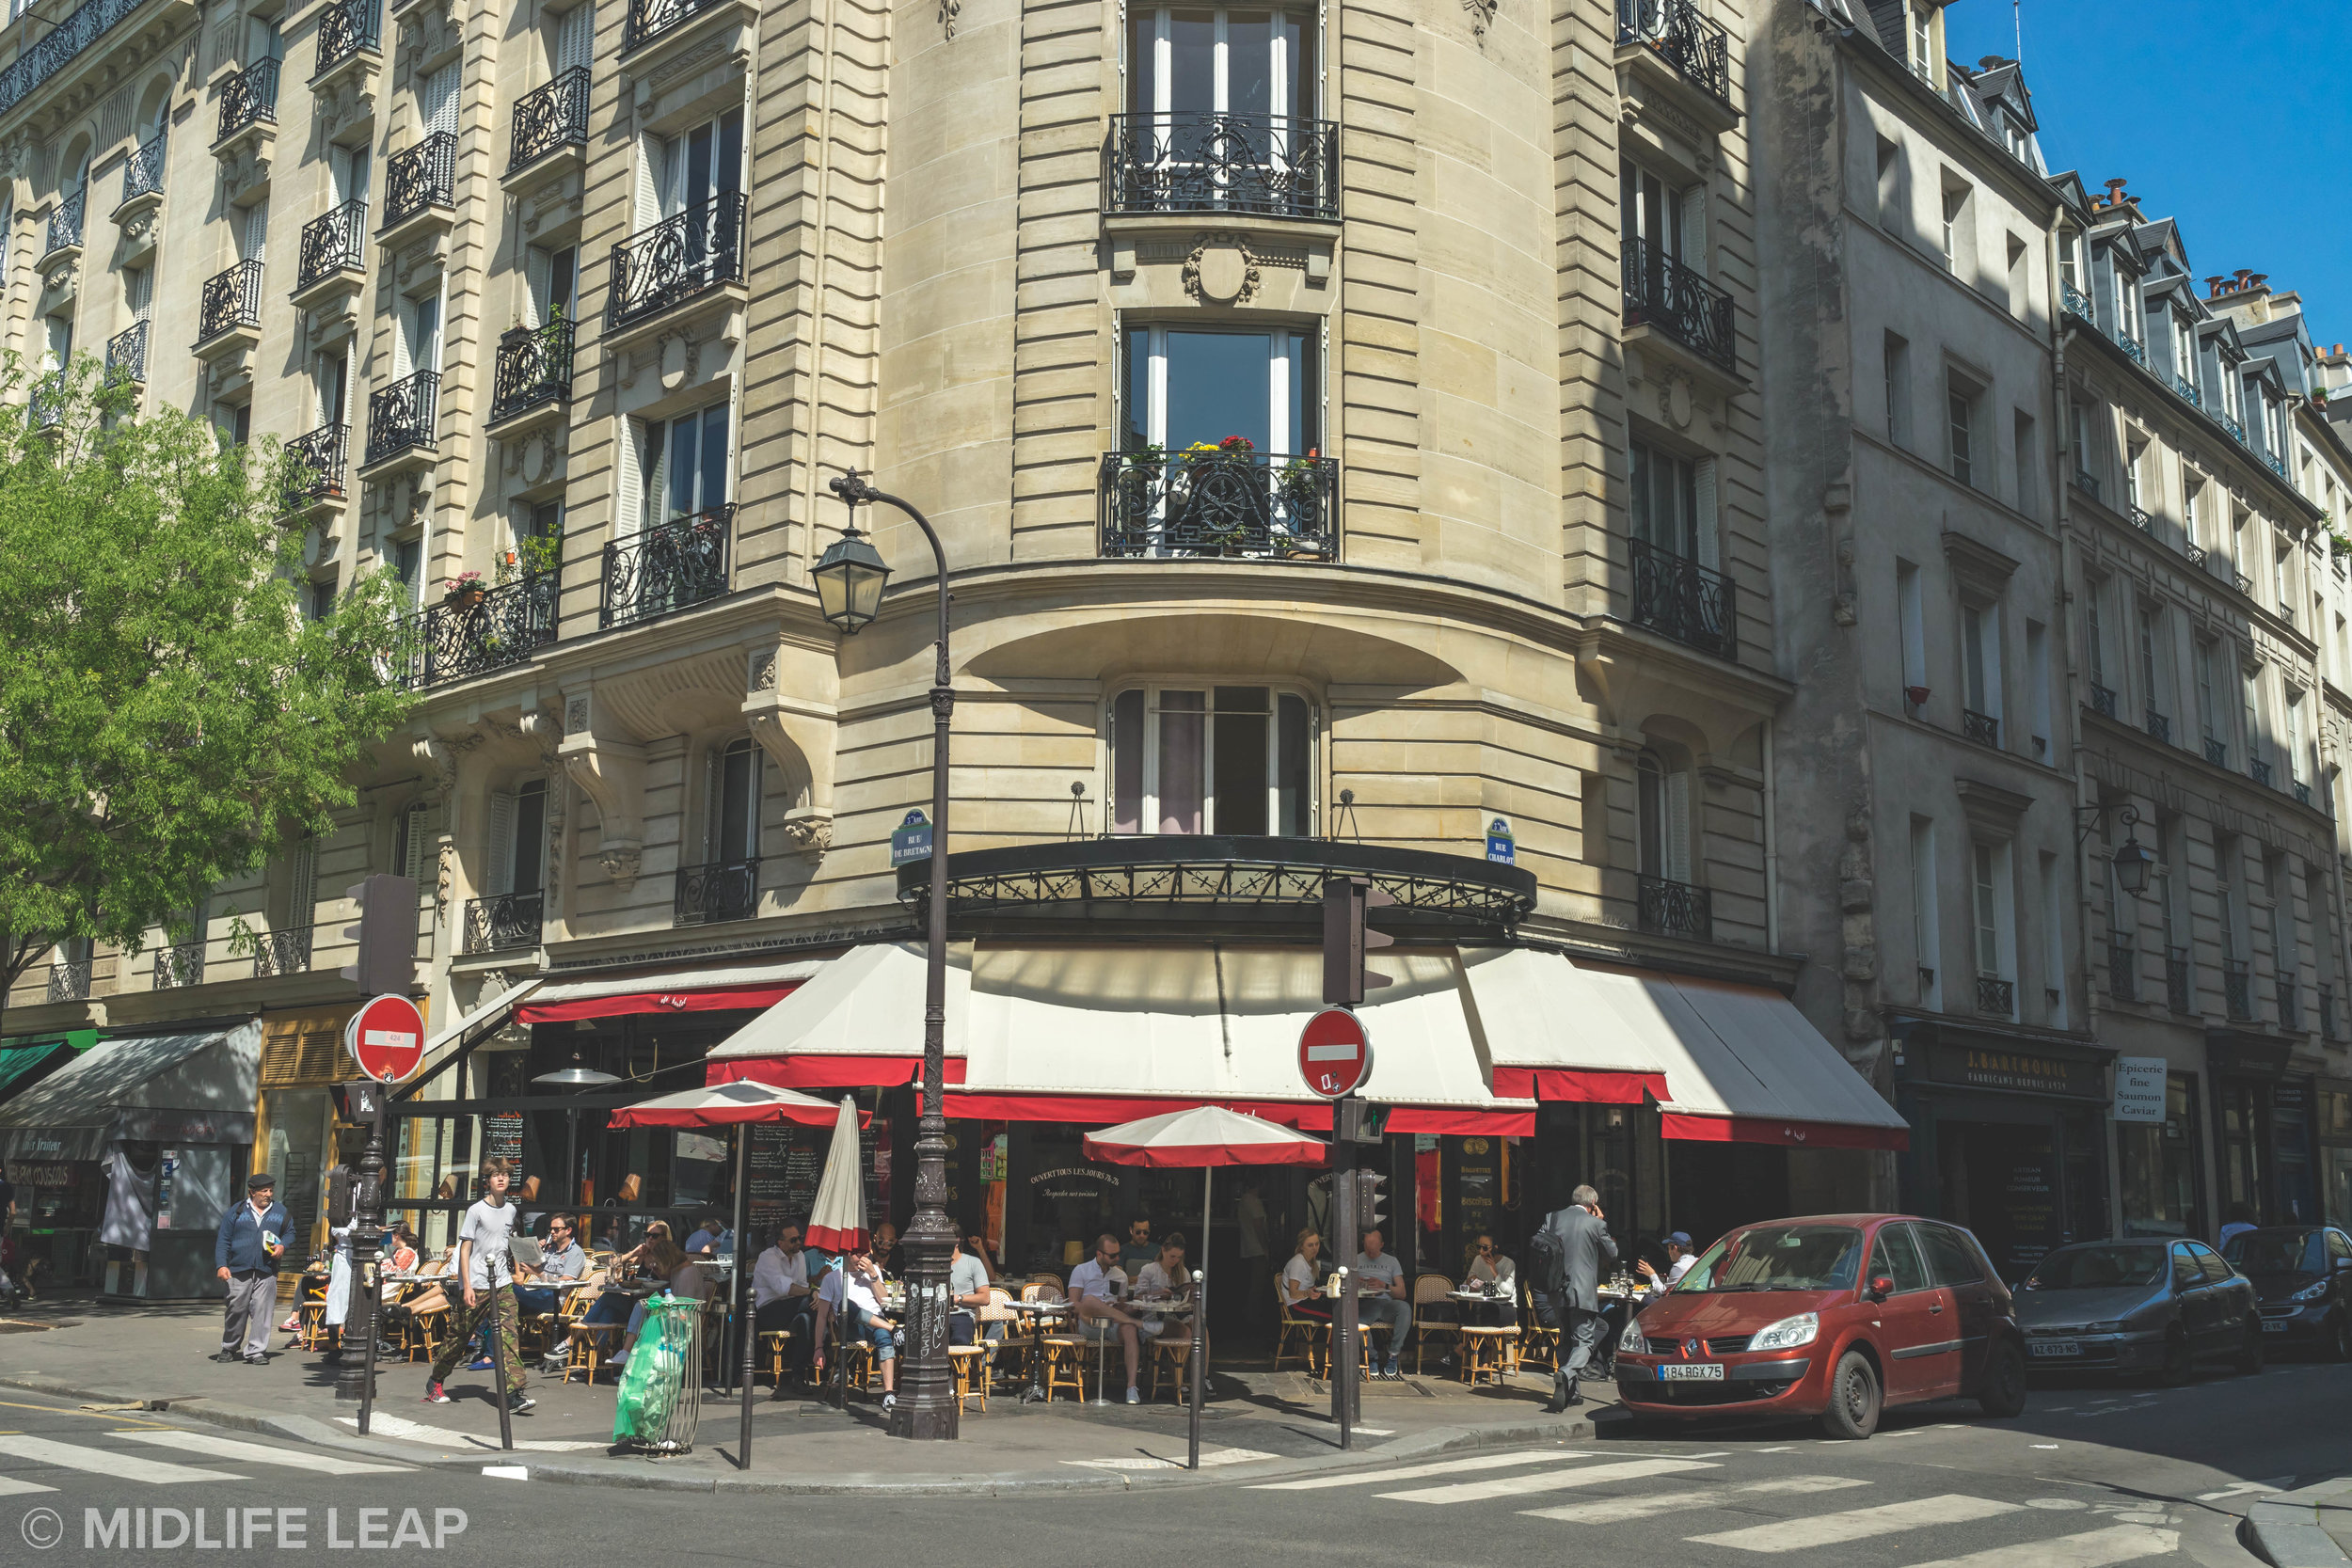 cafe-charlot-where-to-eat-in-paris